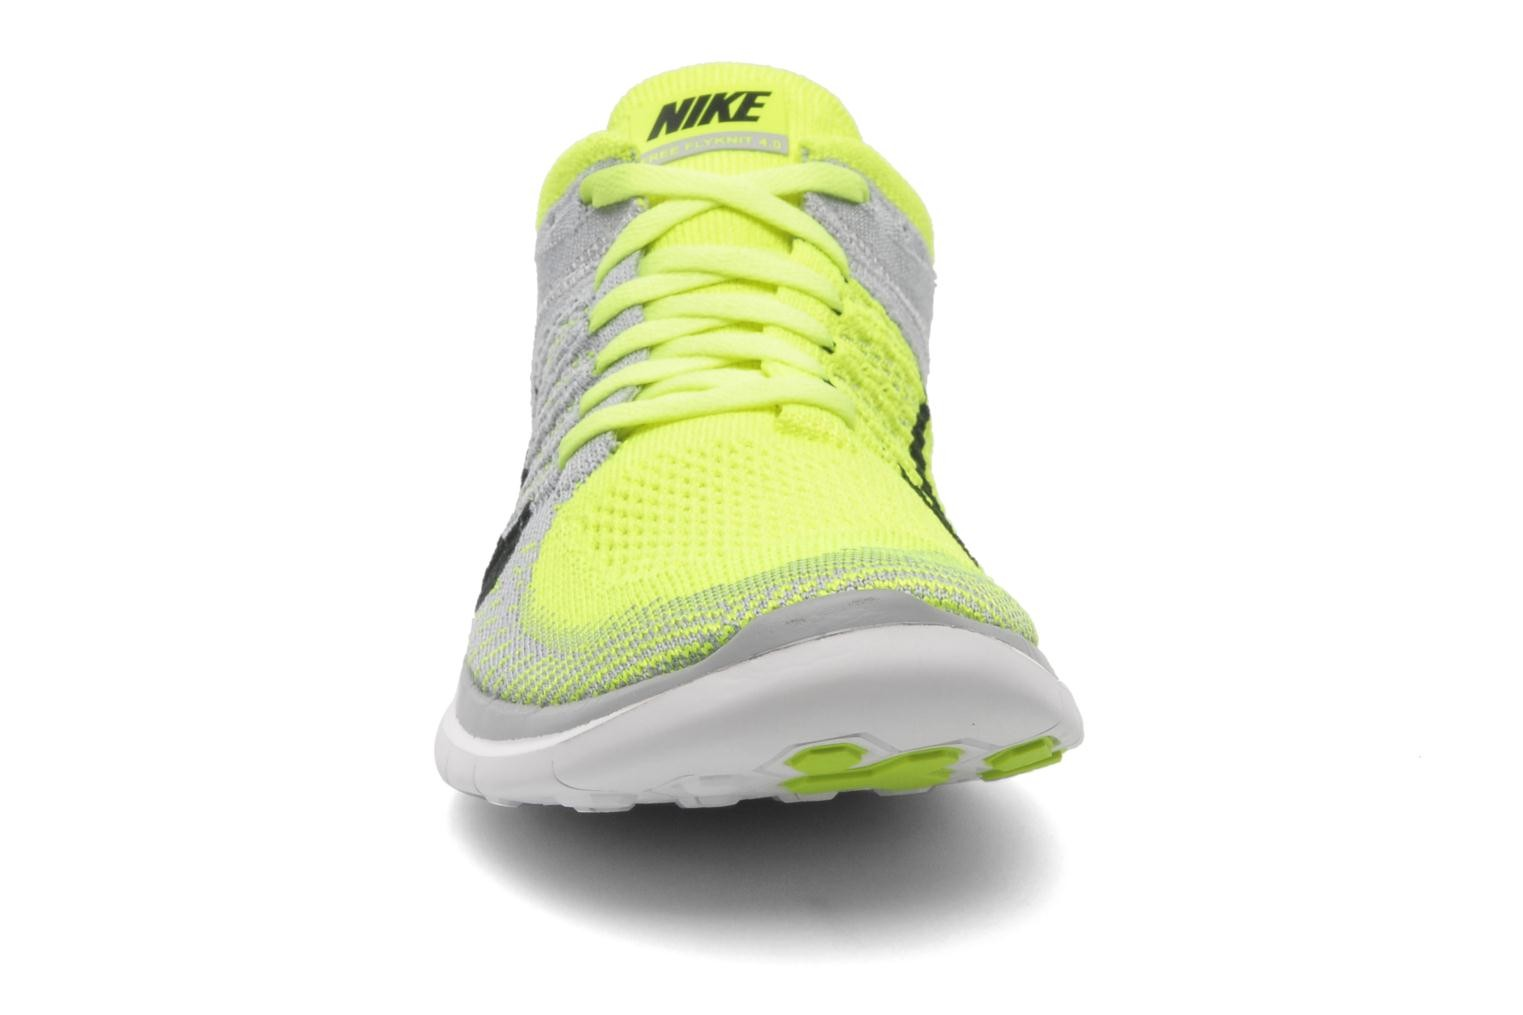 Nike Free 4.0 Flyknit Wolf Grey/Black-Volt-White Men's Running Shoes